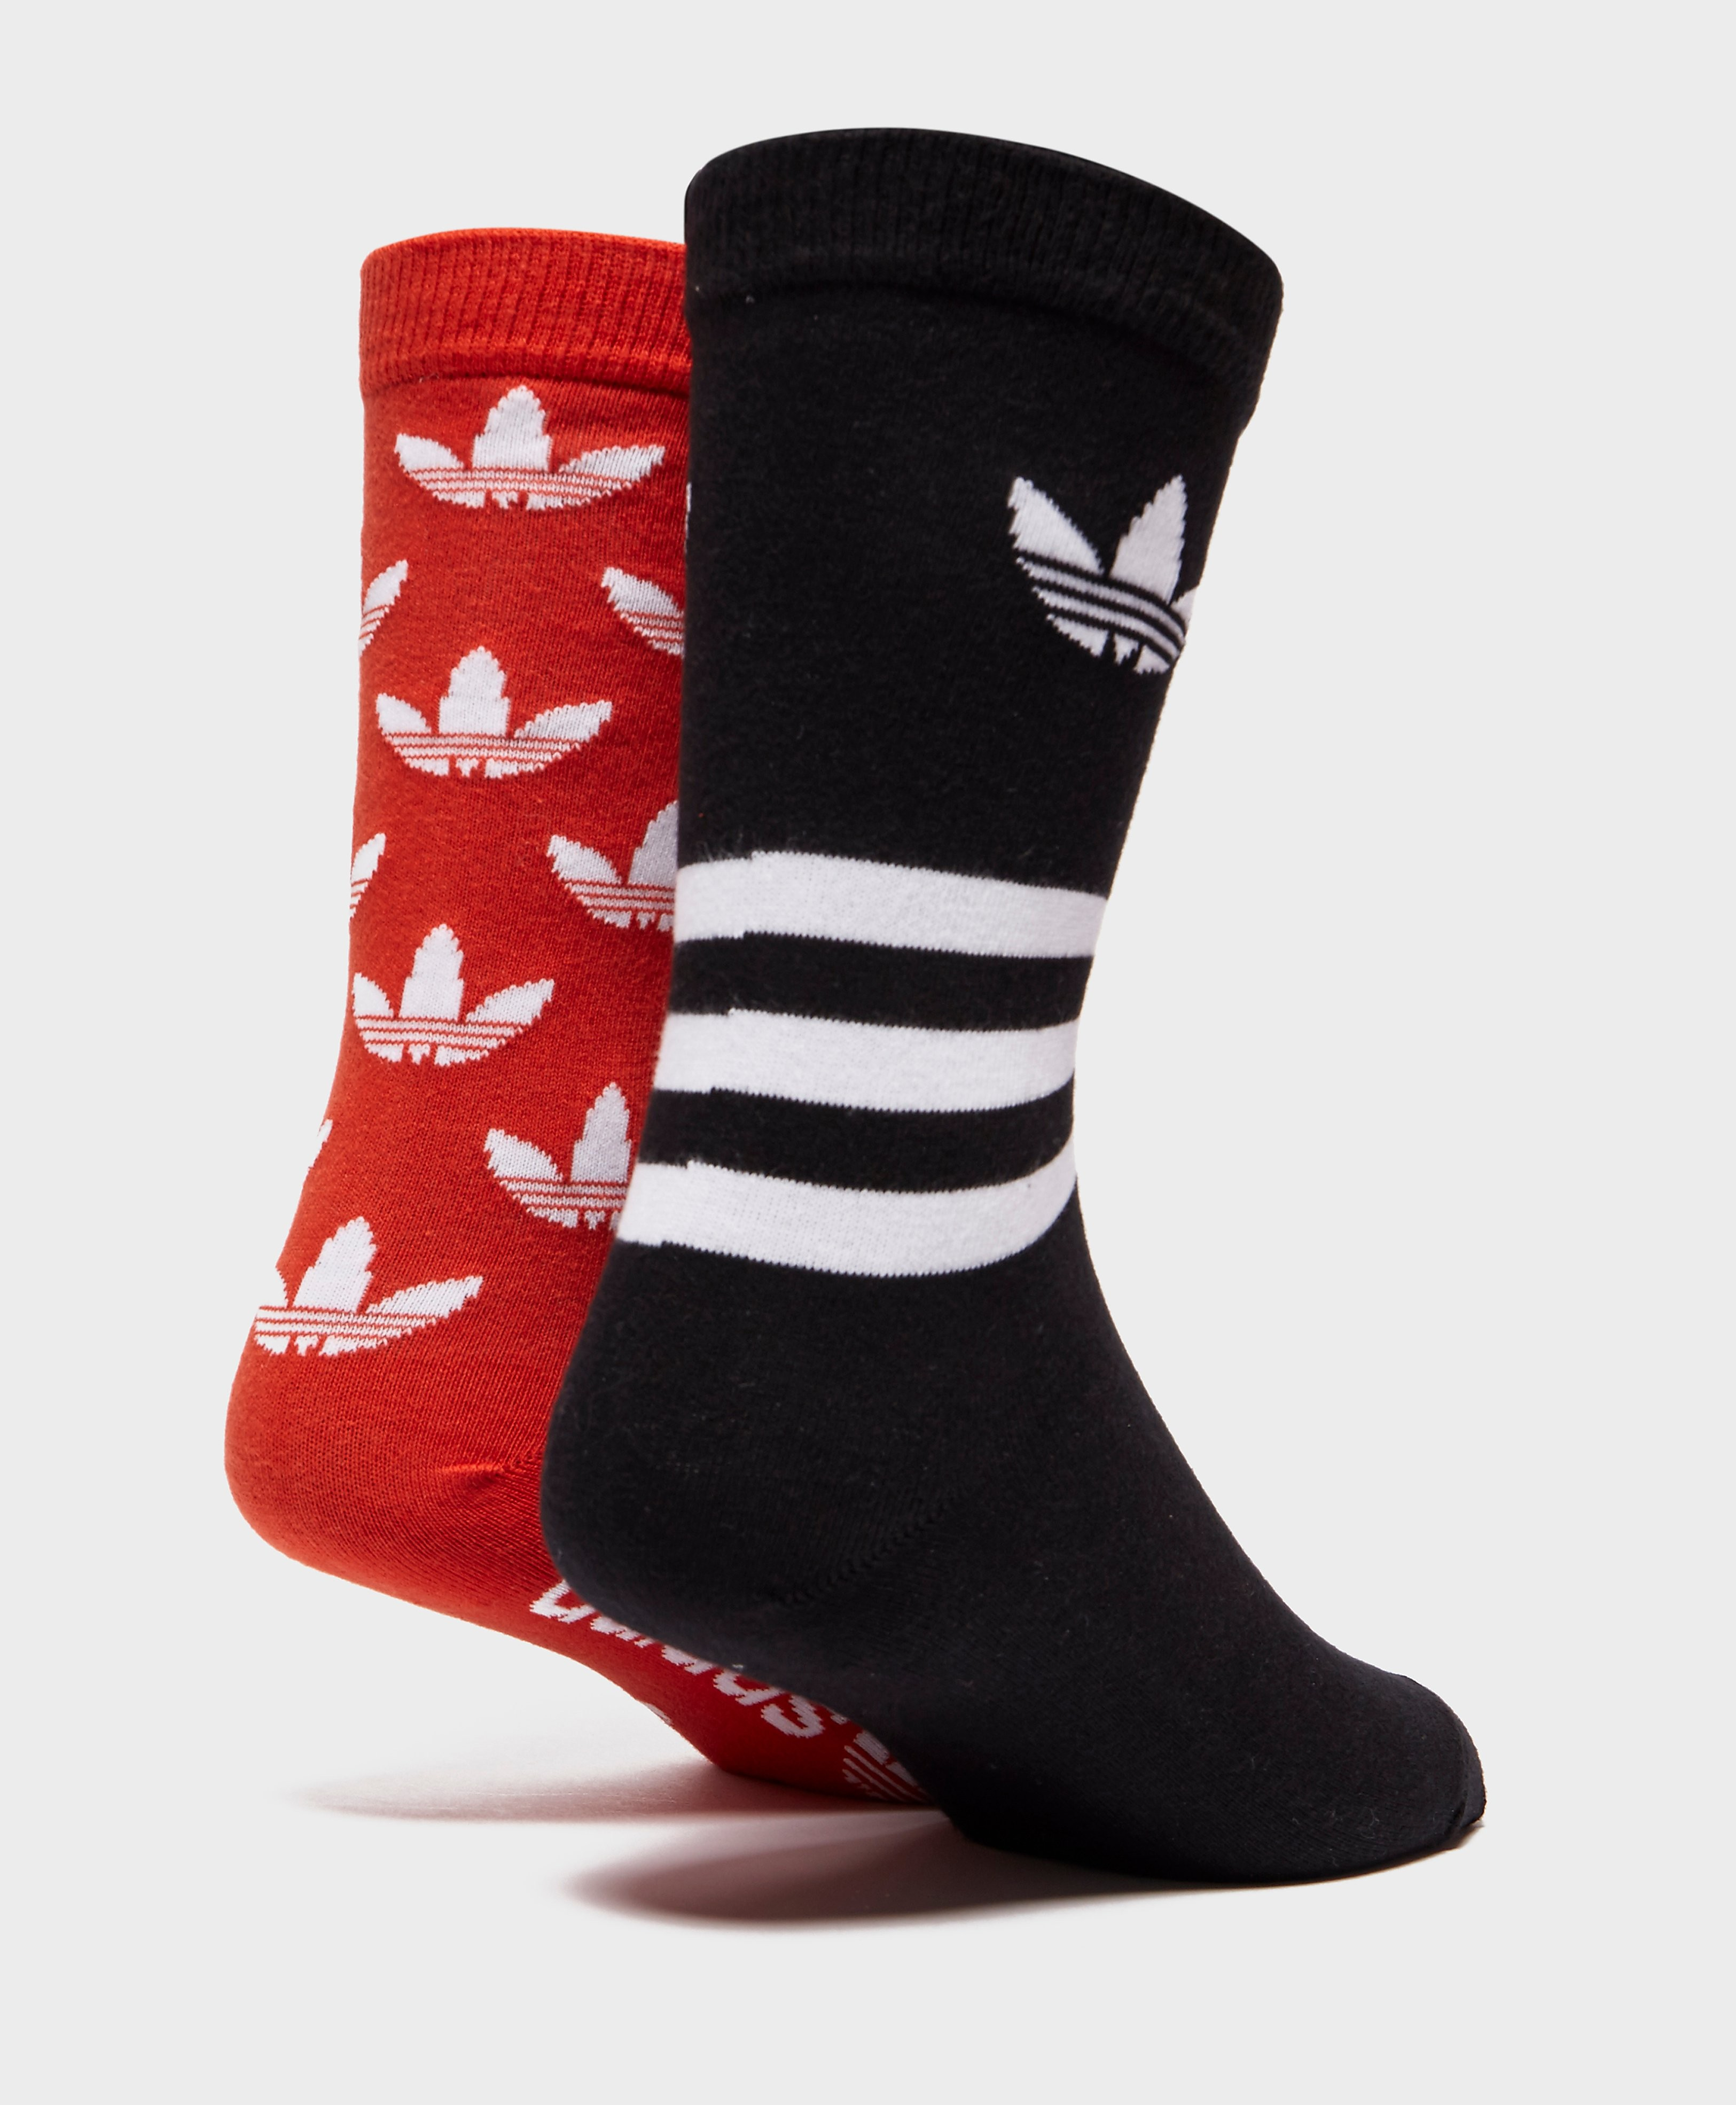 adidas Originals 2-Pack Trefoil Crew Socks